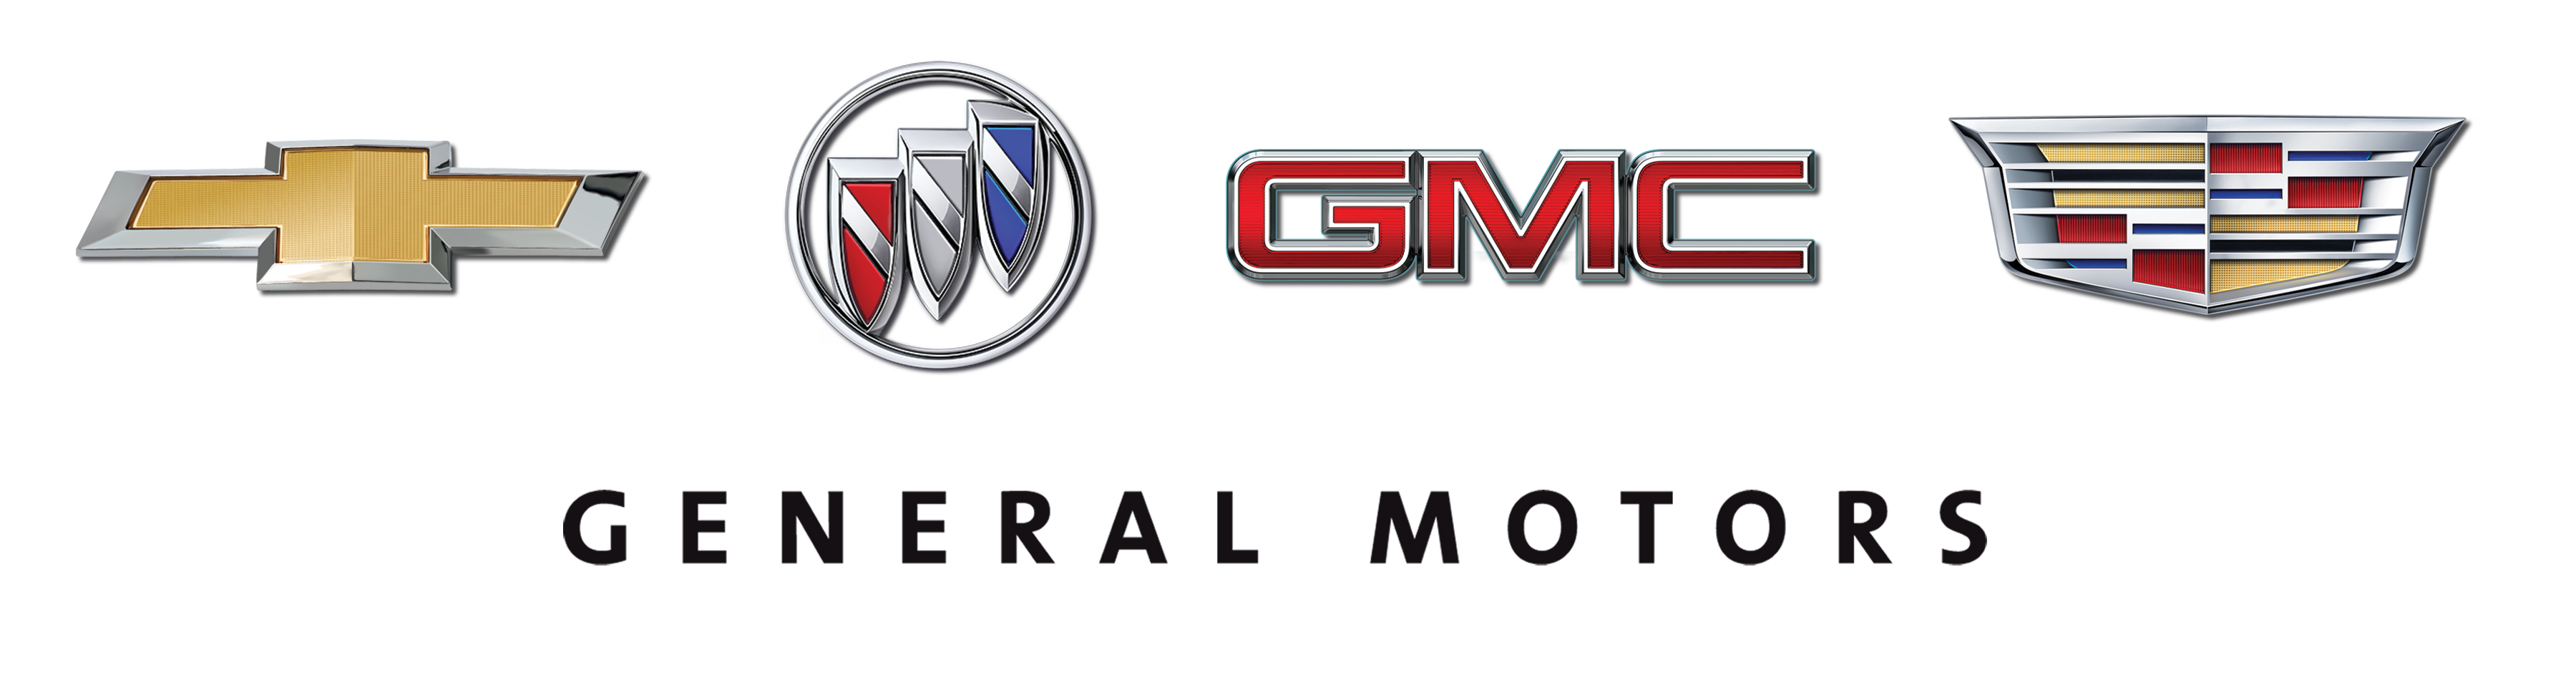 General Motors Png - GM Corporate Newsroom - United States - Images